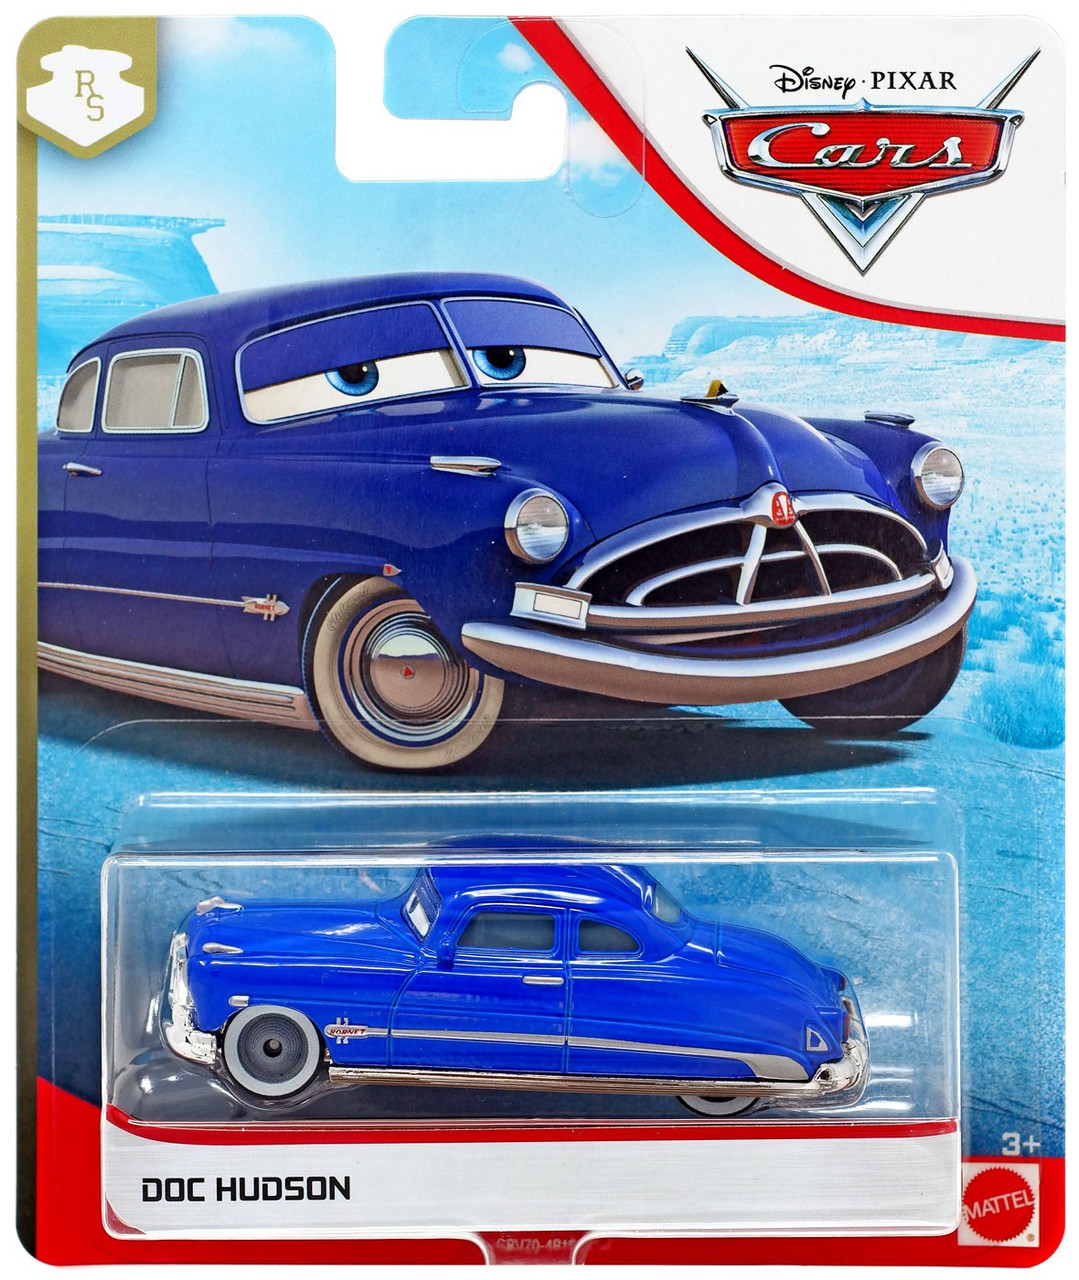 Disney Pixar Cars Radiator Springs Doc Hudson 155 Diecast Car 2019